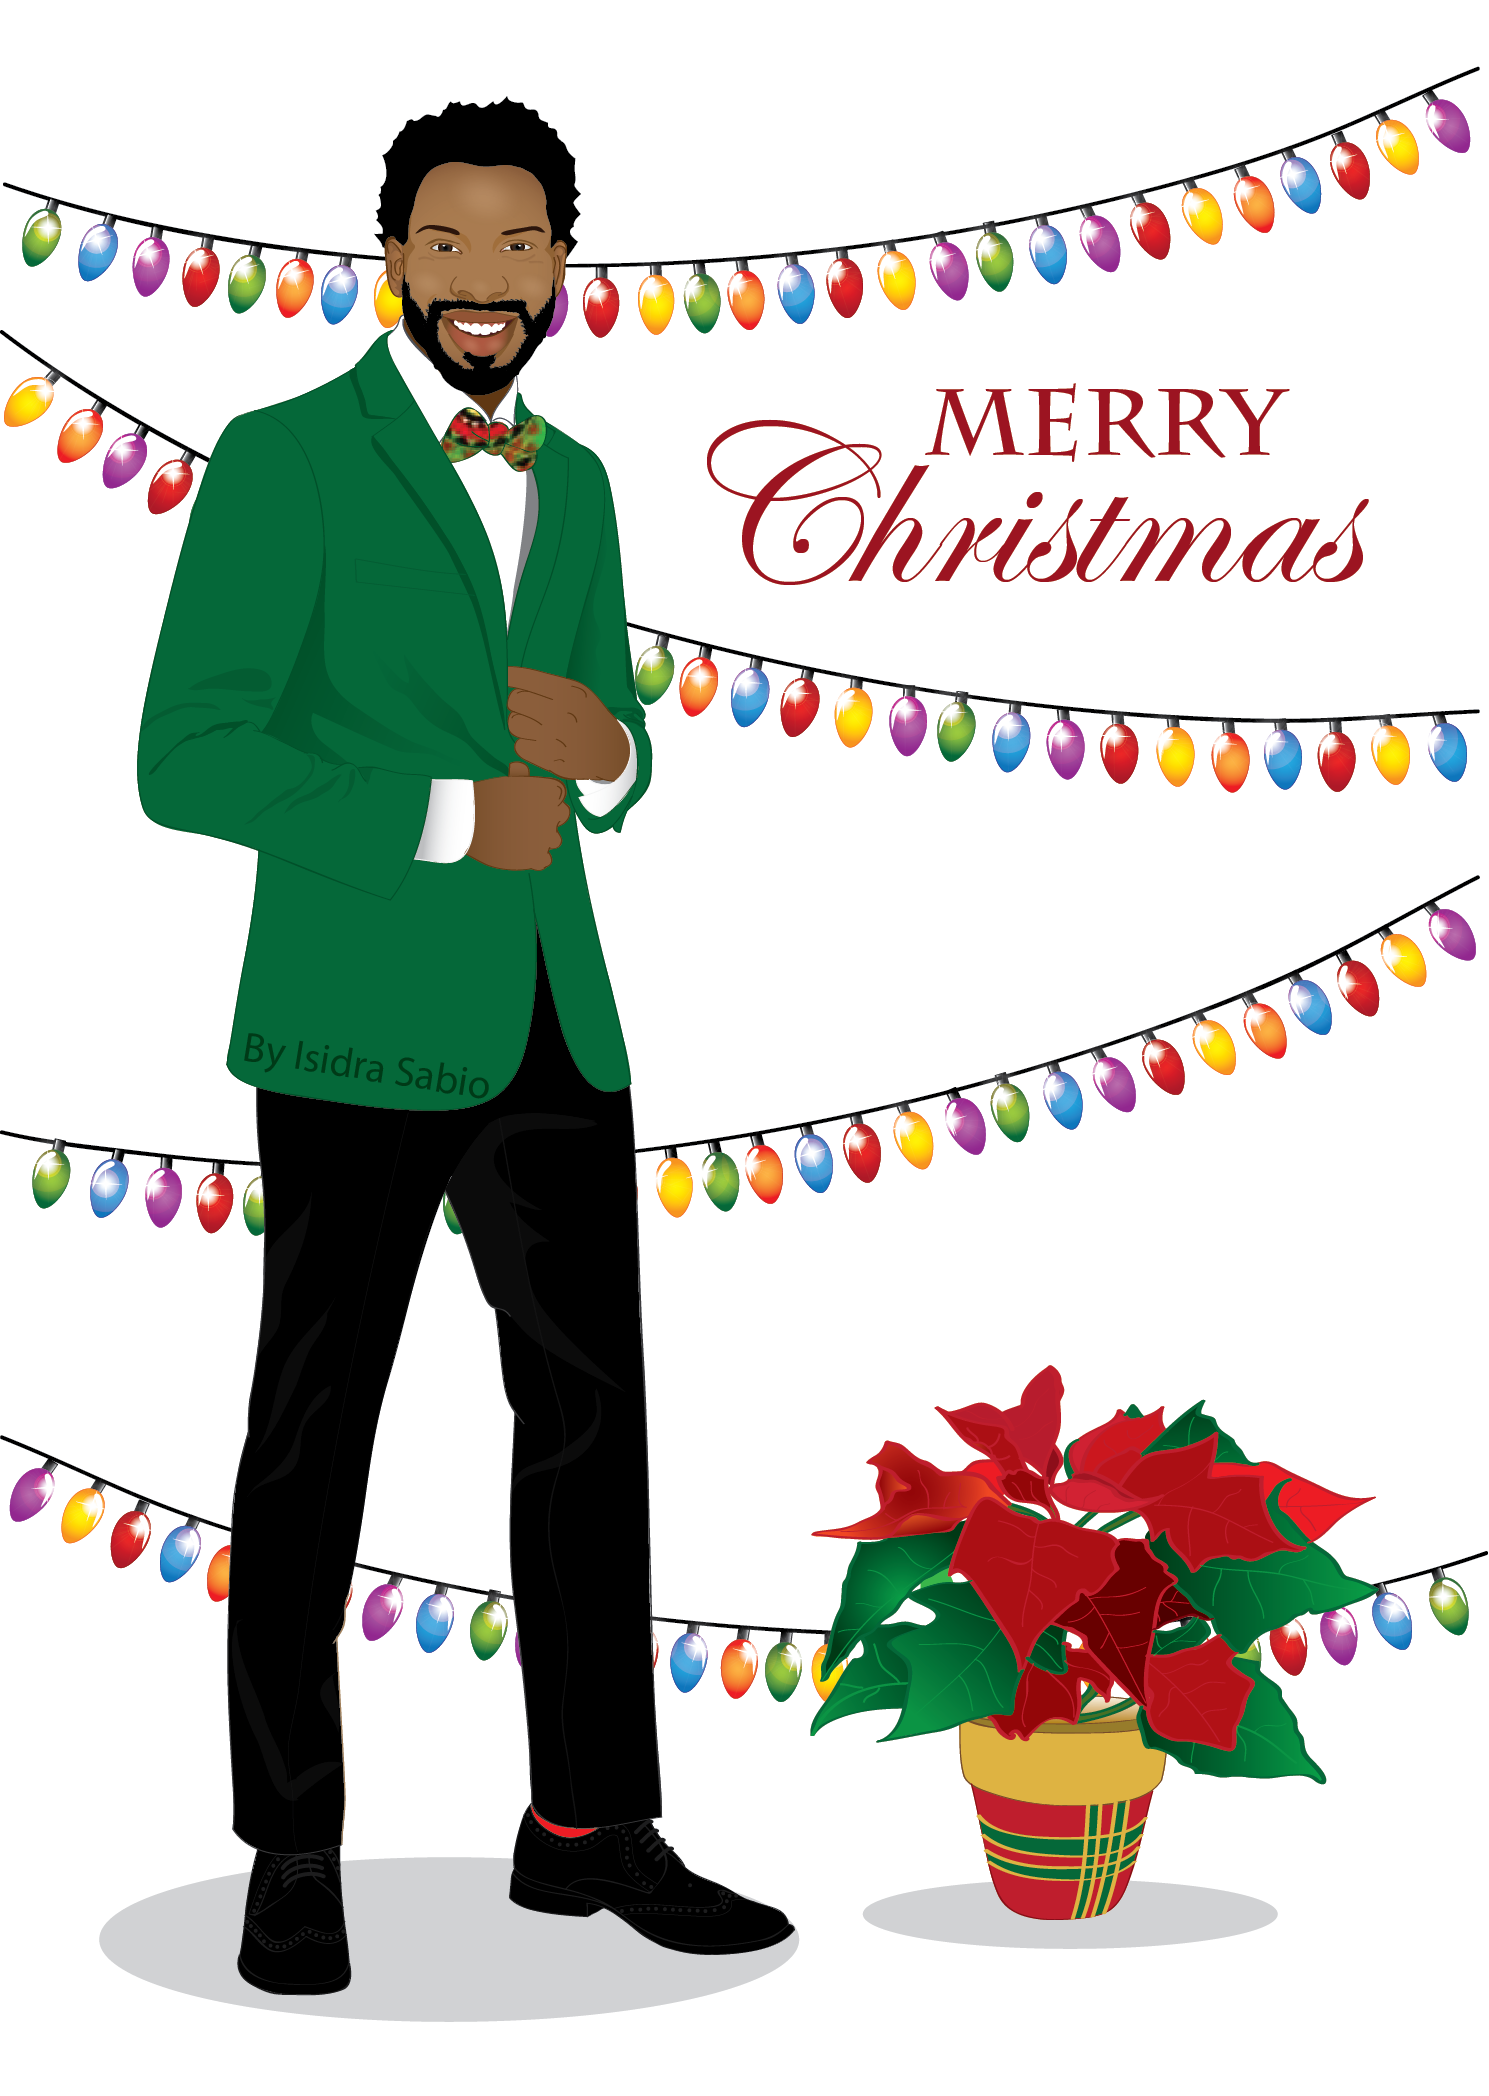 Afrocentric Christmas card for men. Handsome and elegant.